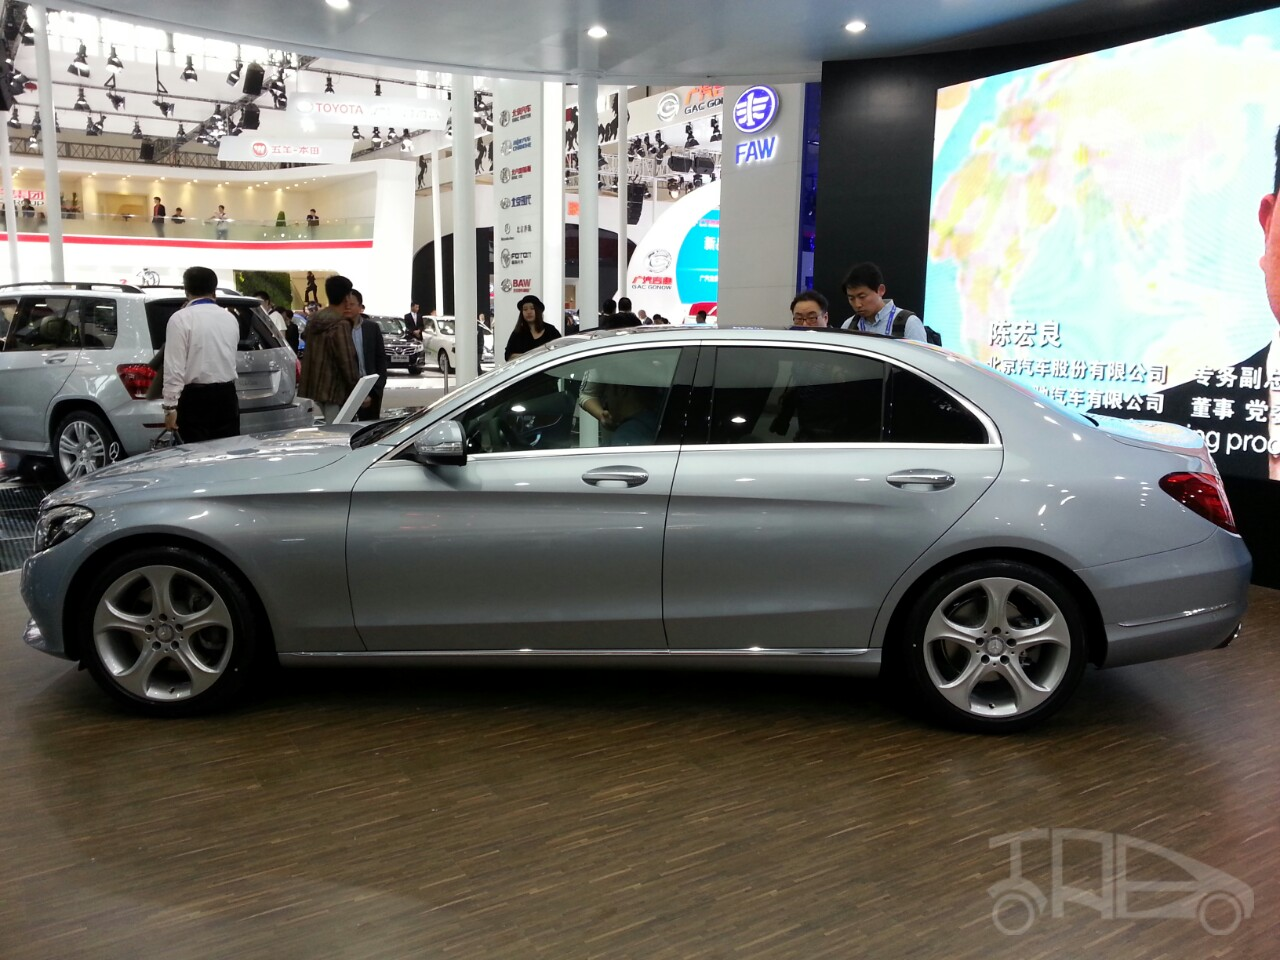 2015 mercedes c class lwb model launched in 2014 beijing motor show. Black Bedroom Furniture Sets. Home Design Ideas